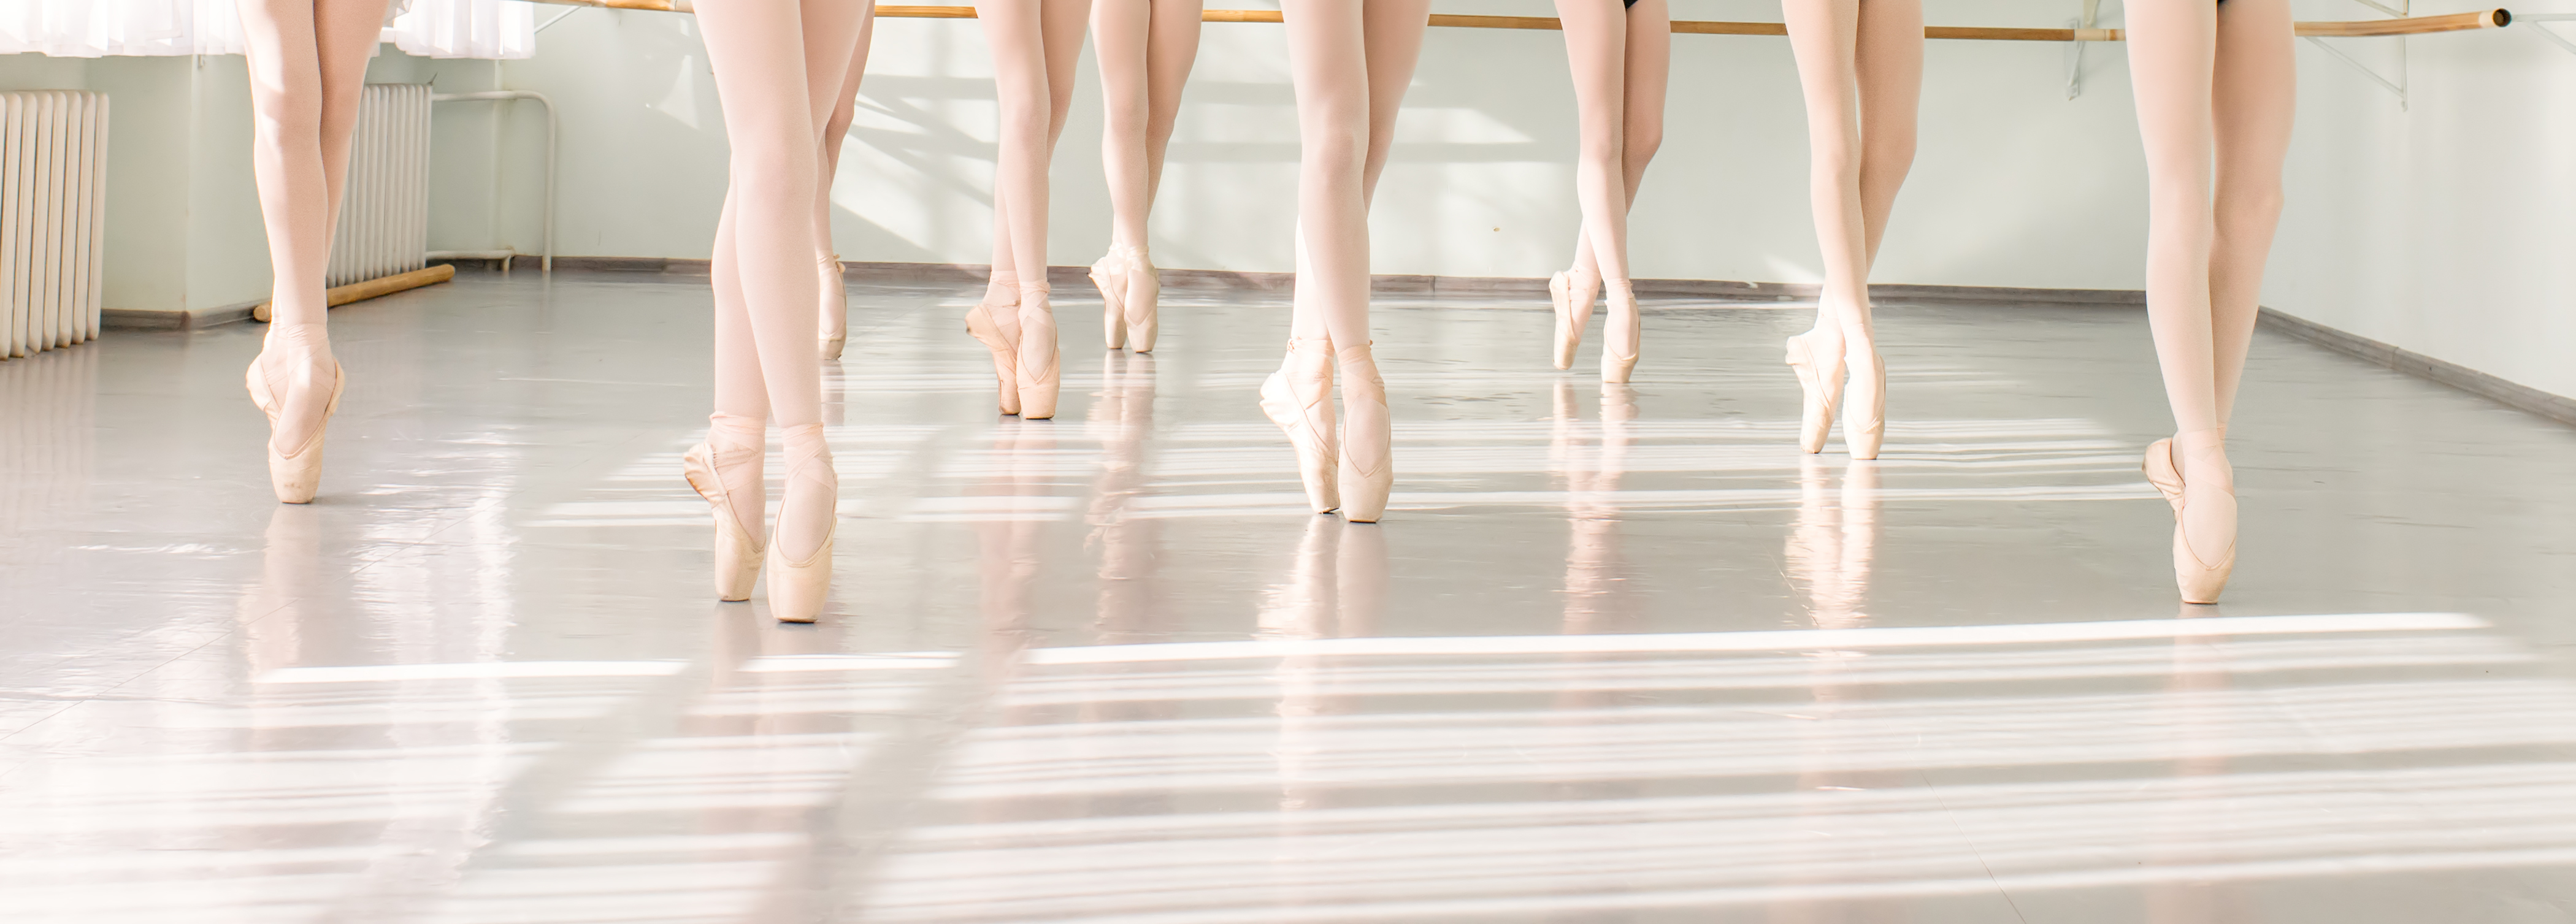 Row of ballerinas in pointe shoes